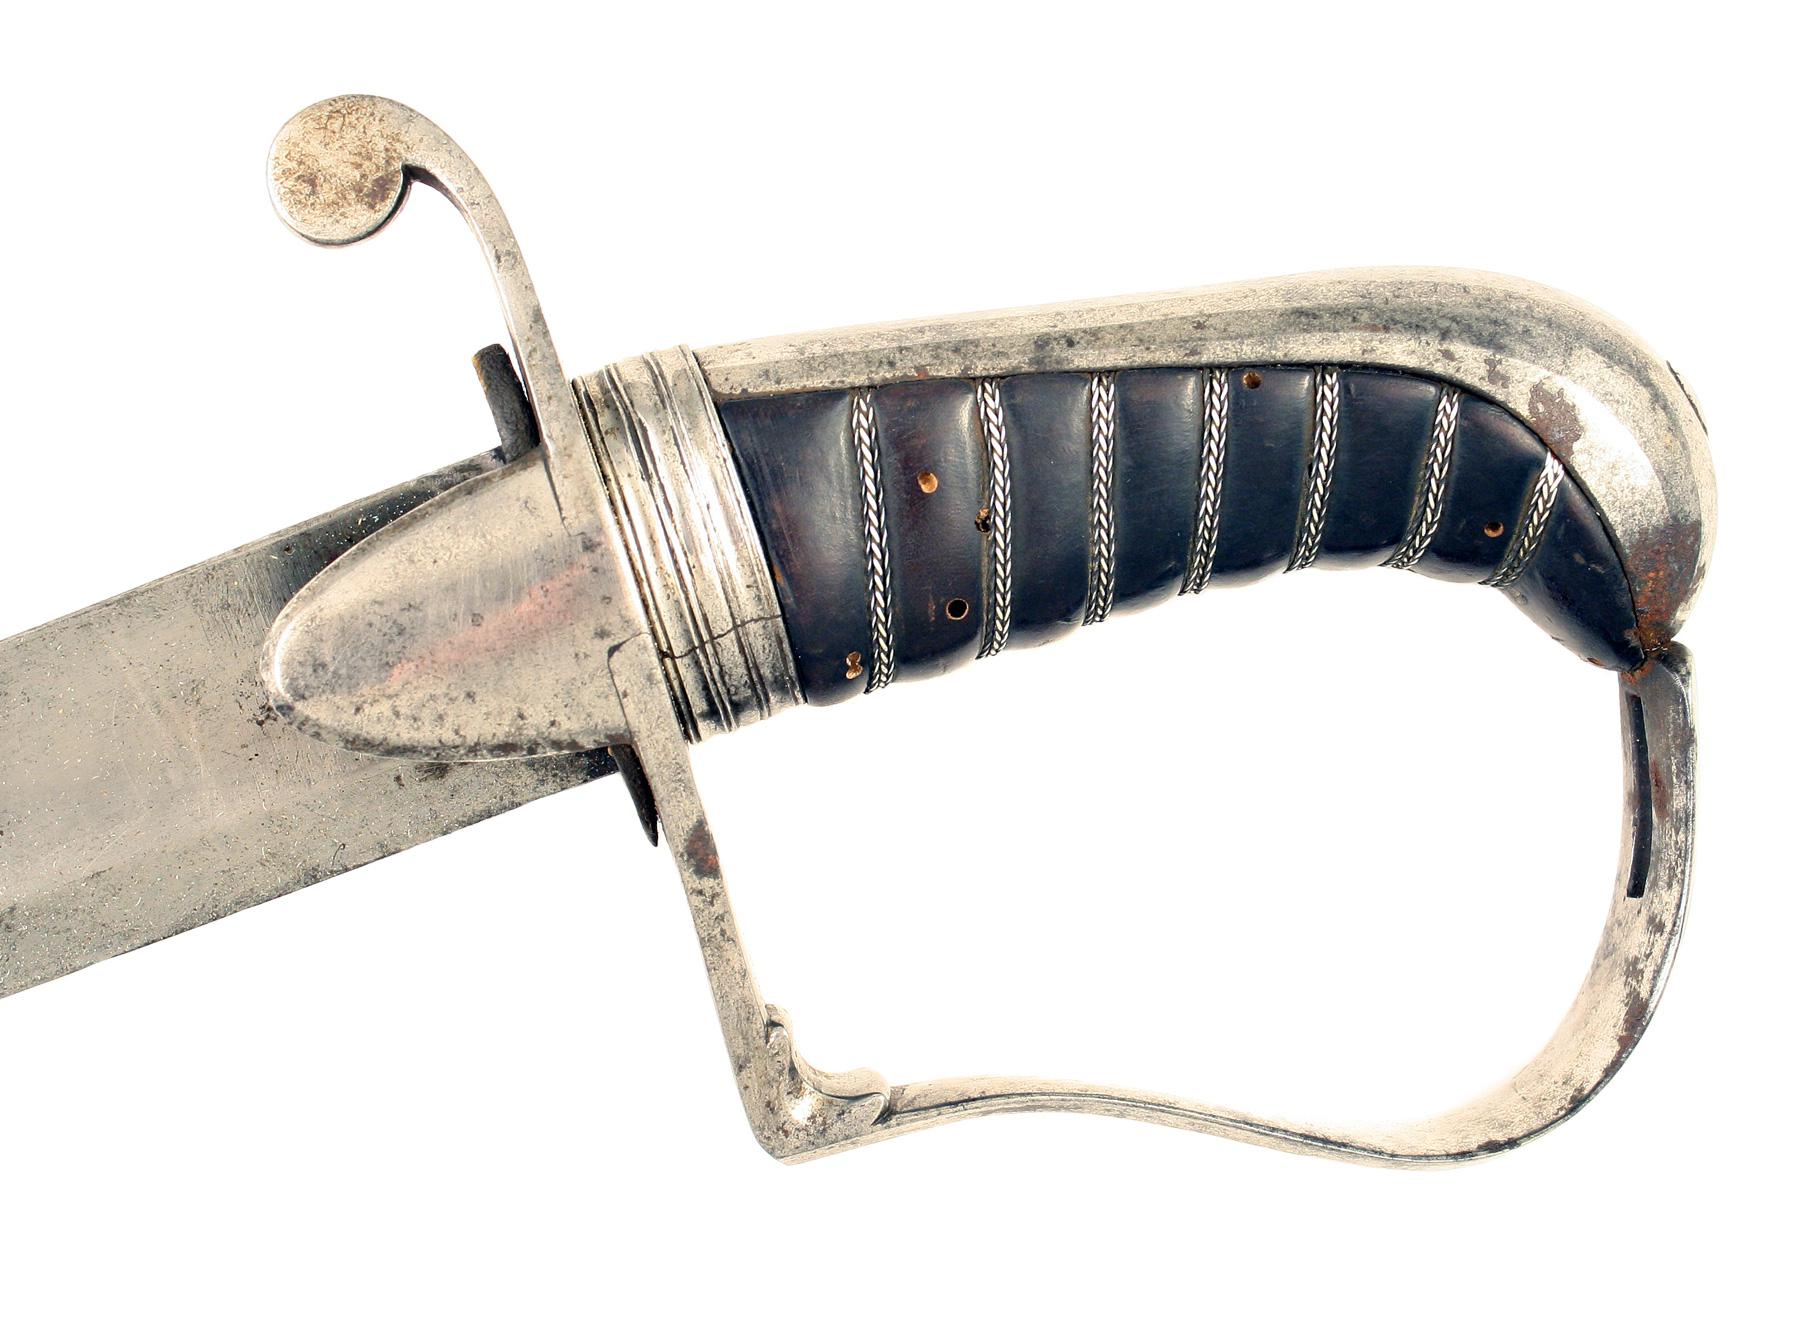 A 1796 Light Cavalry Officers Sword